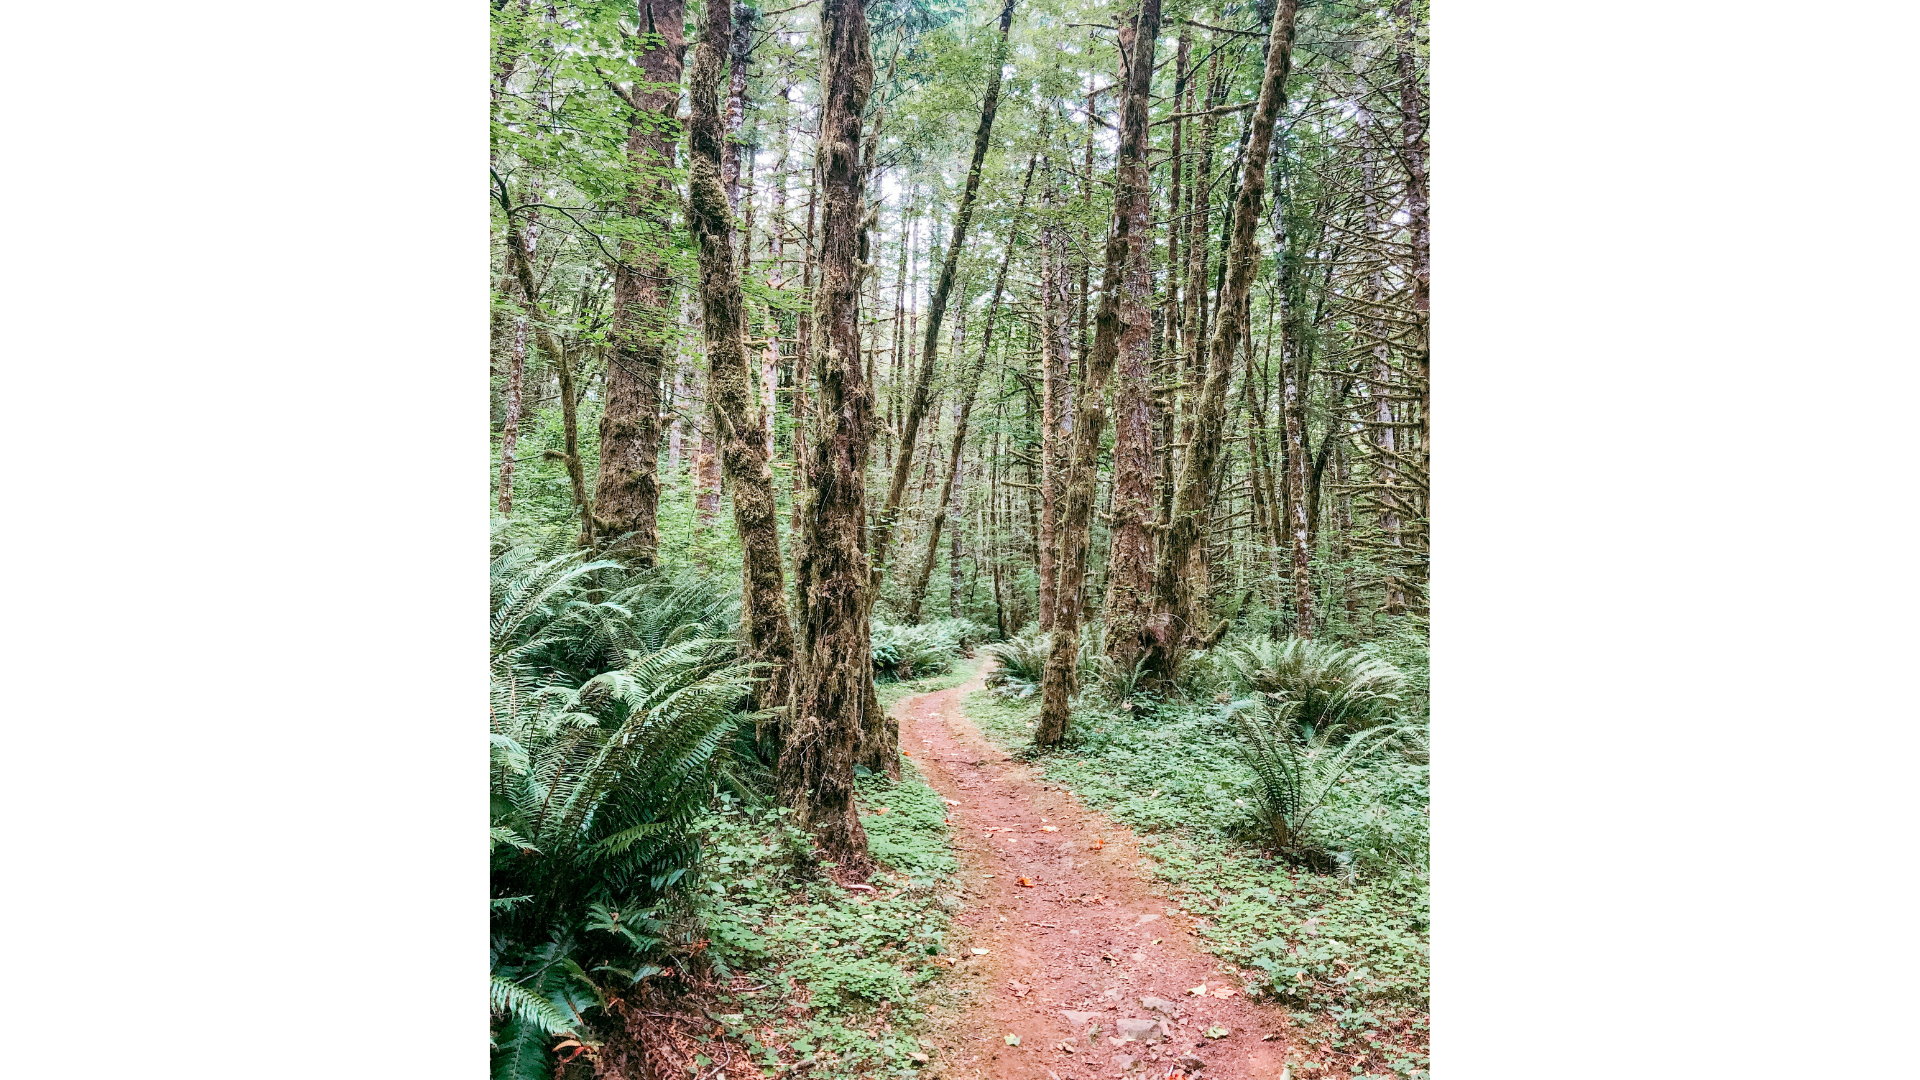 Hiking through the Tillamook Forest.